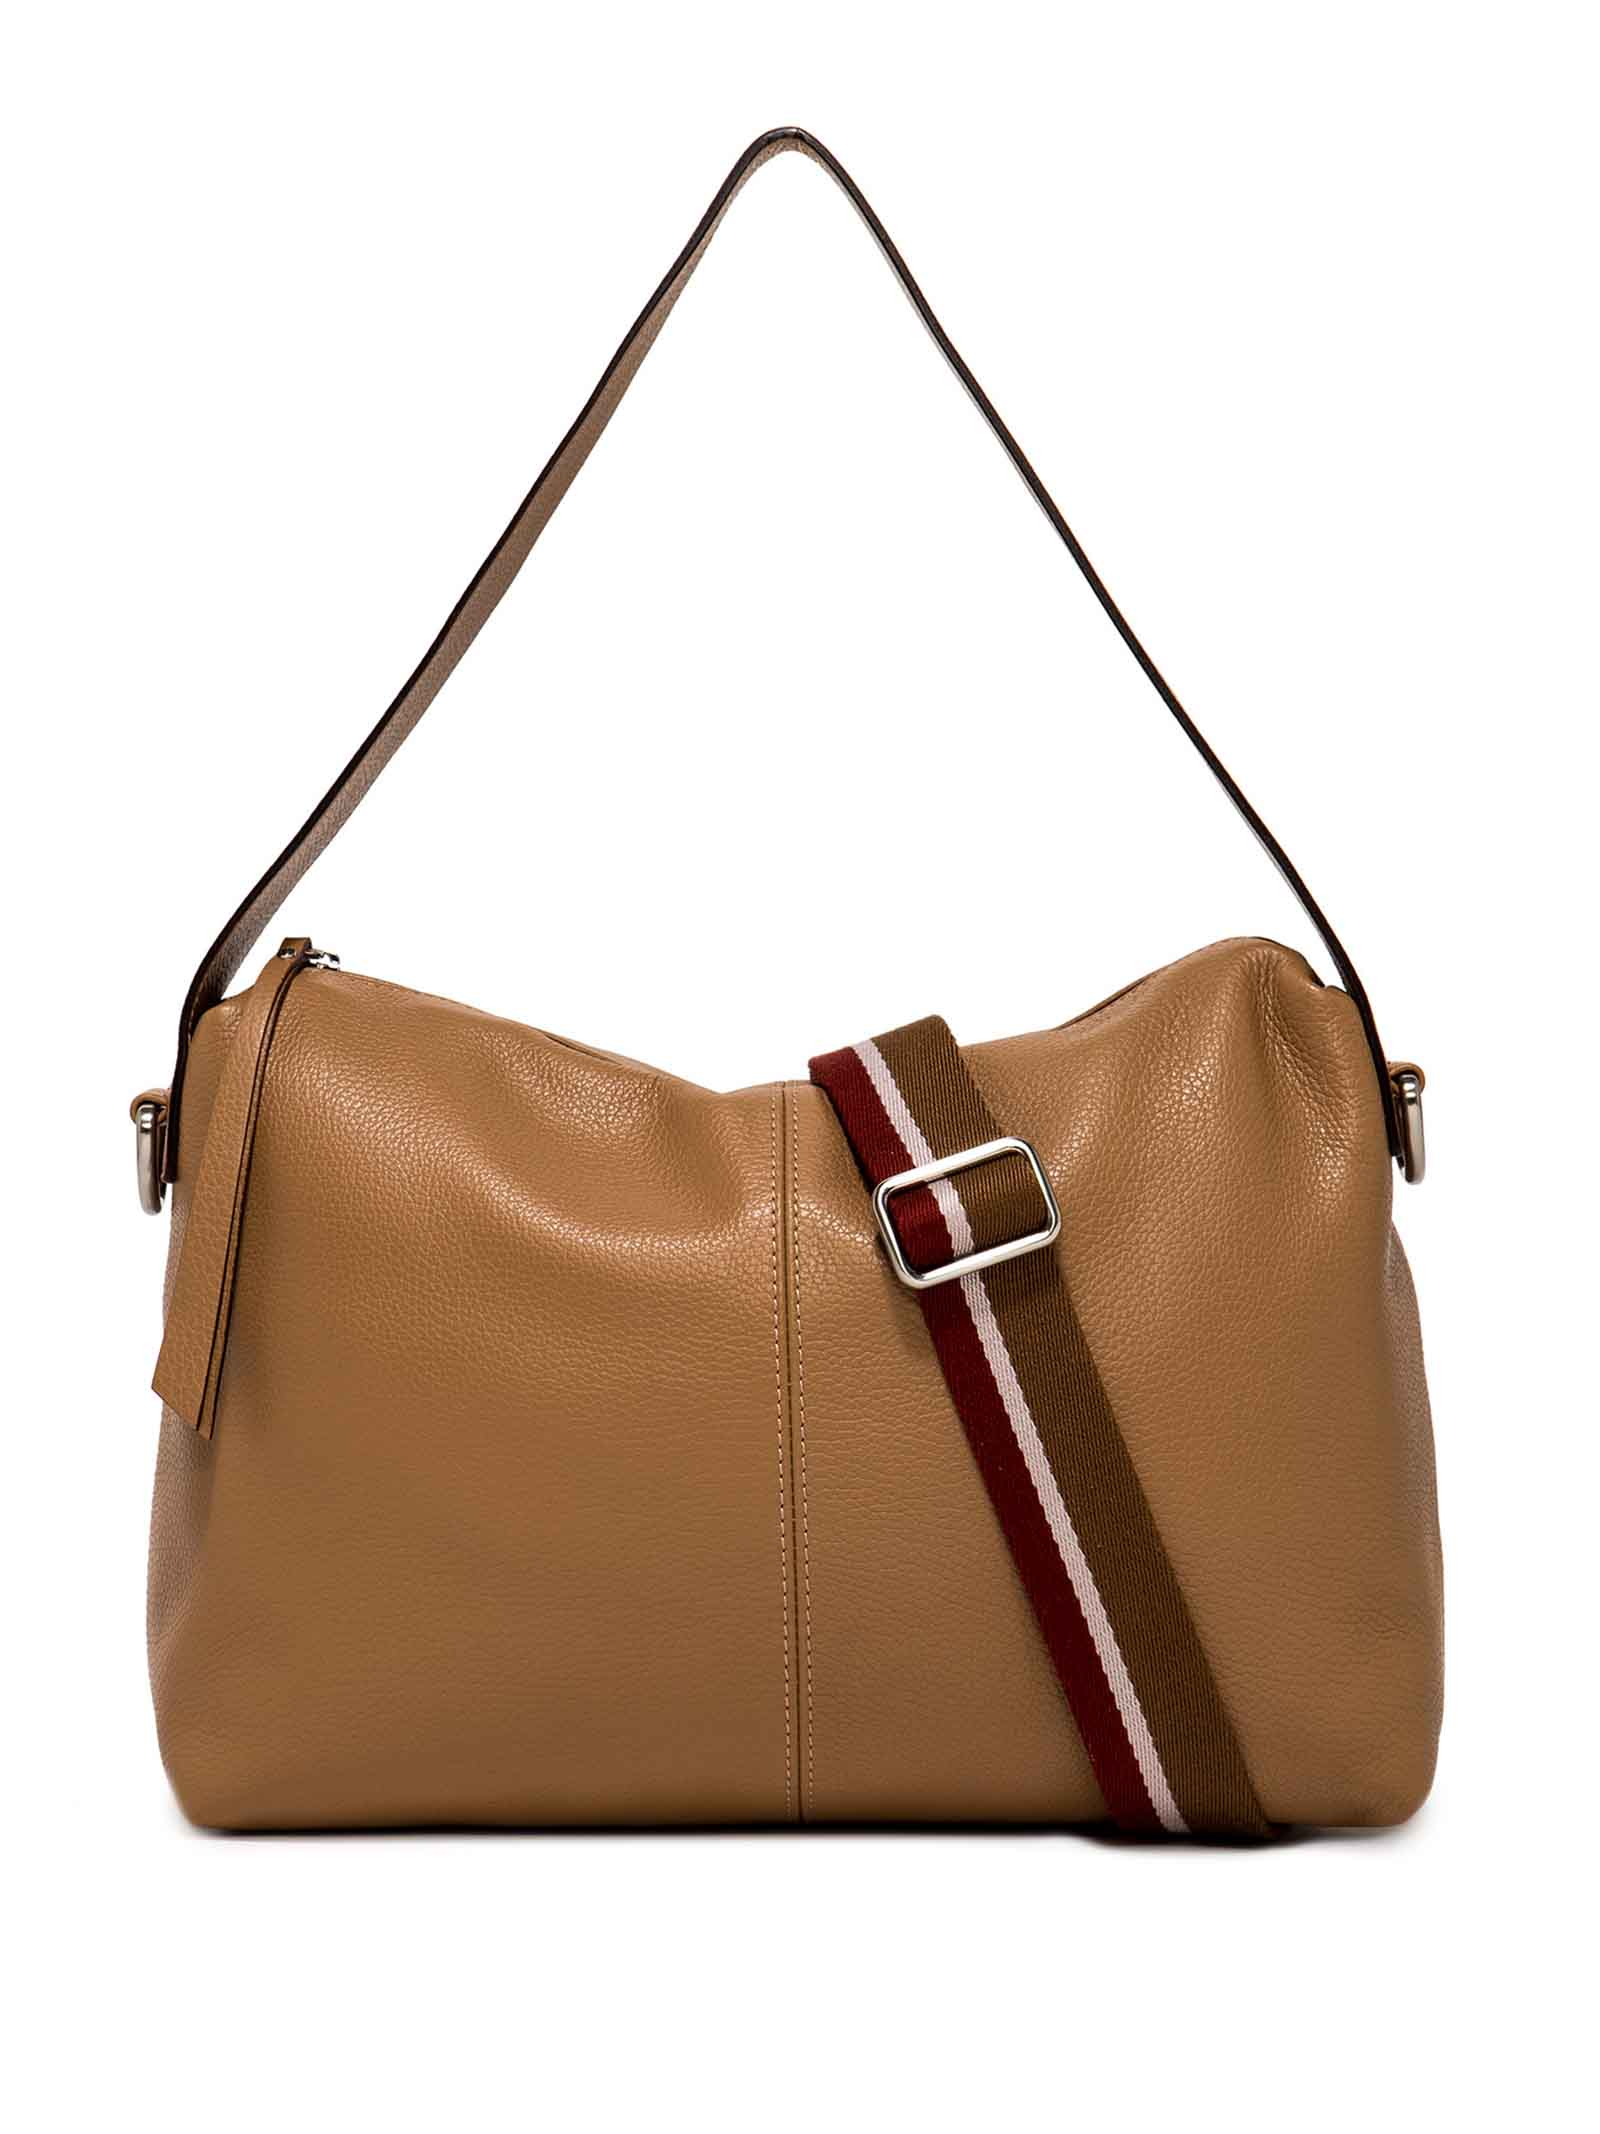 Women's Shoulder Bag Giorgia in Camel Hammered Leather With Cross-body Strap In Matching Leather And Cross-body Strap in Fabric Adjustables and Detachables Gianni Chiarini | Bags and backpacks | BS7249009